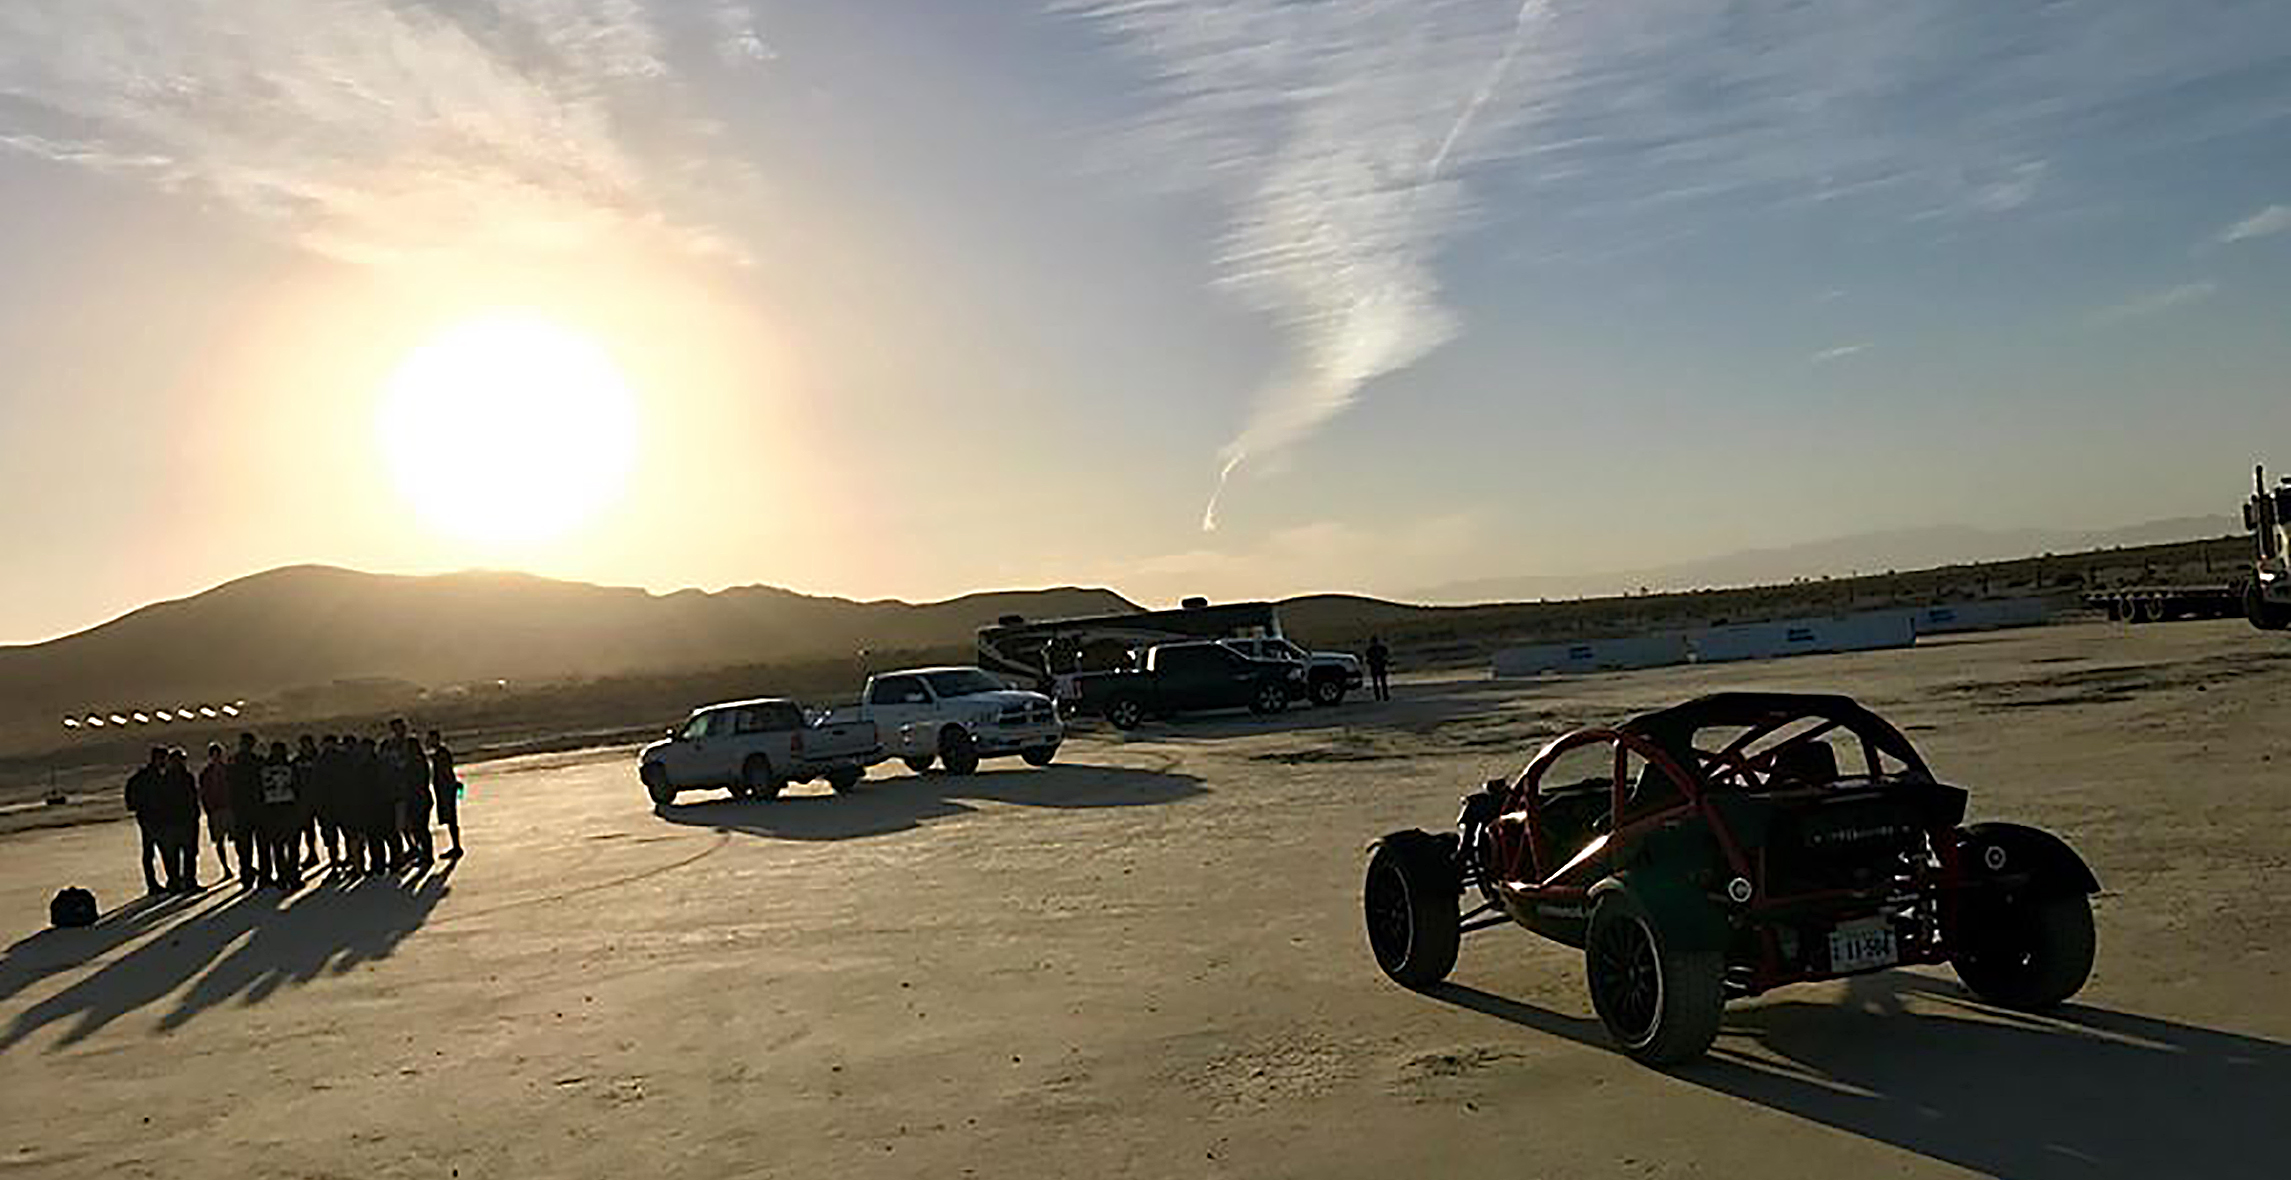 -On set with the Grand Tour at the El Mirage dry lake beds with the Ariel Nomad Sport